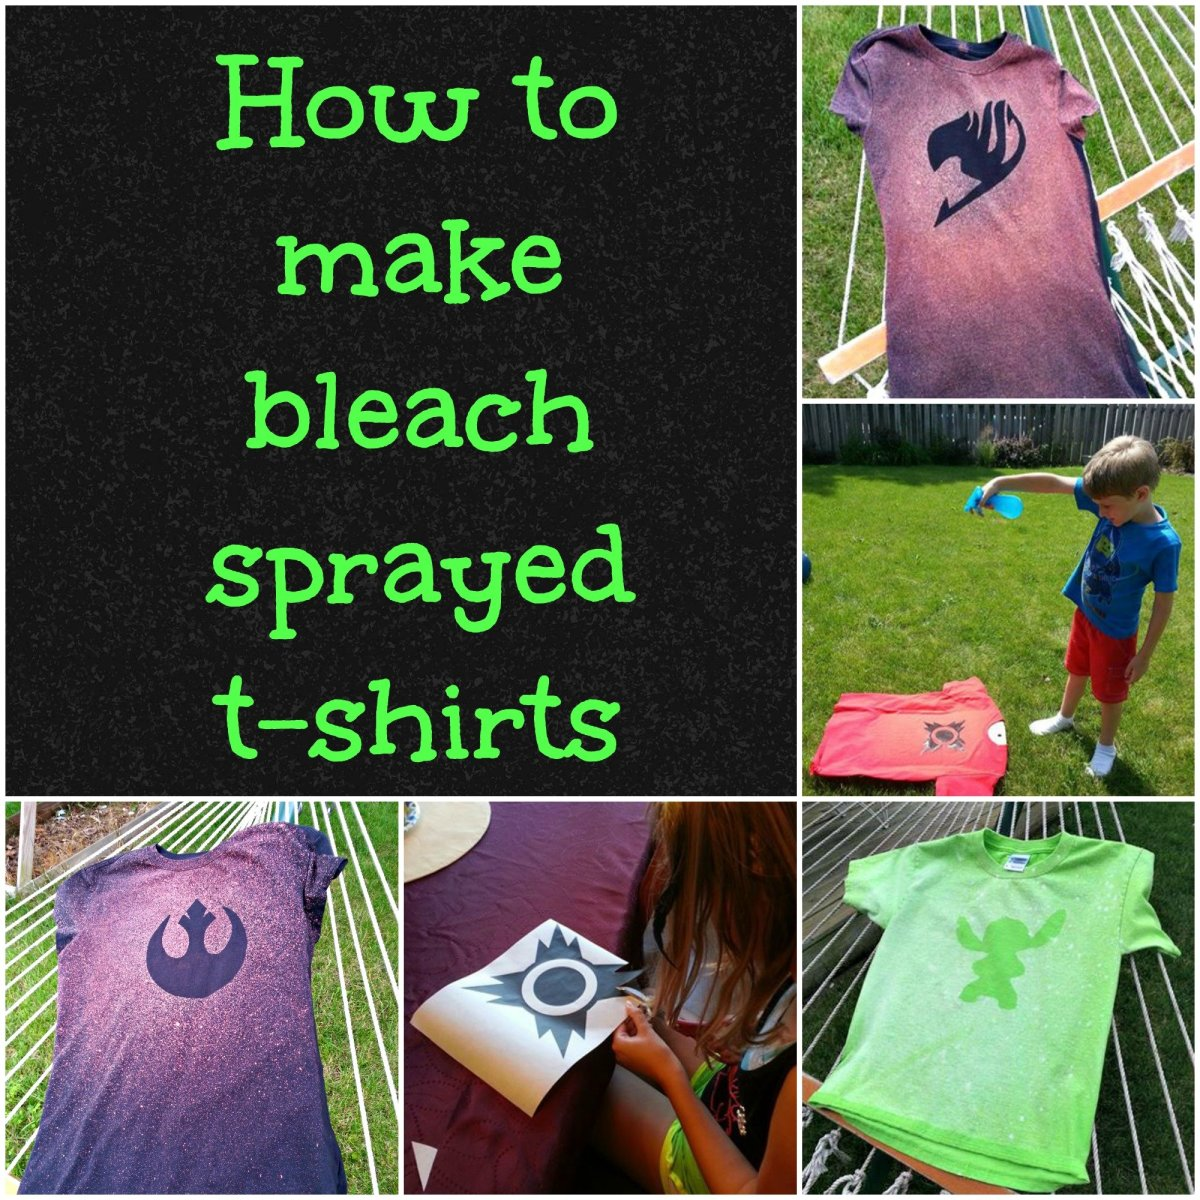 Easy and fun to make...bleach sprayed t-shirts!!!